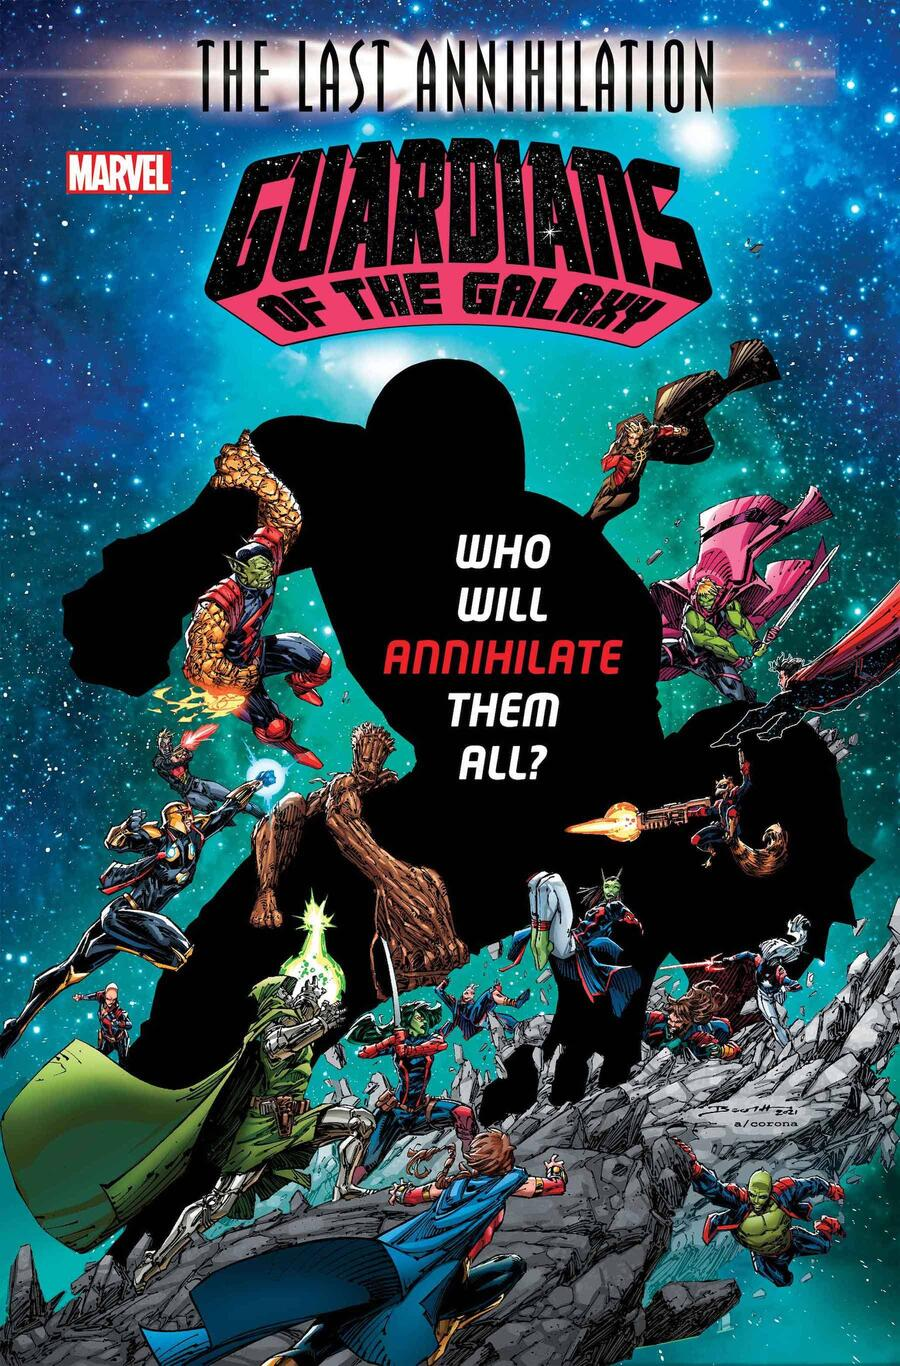 GUARDIANS OF THE GALAXY #16 cover by Brett Booth